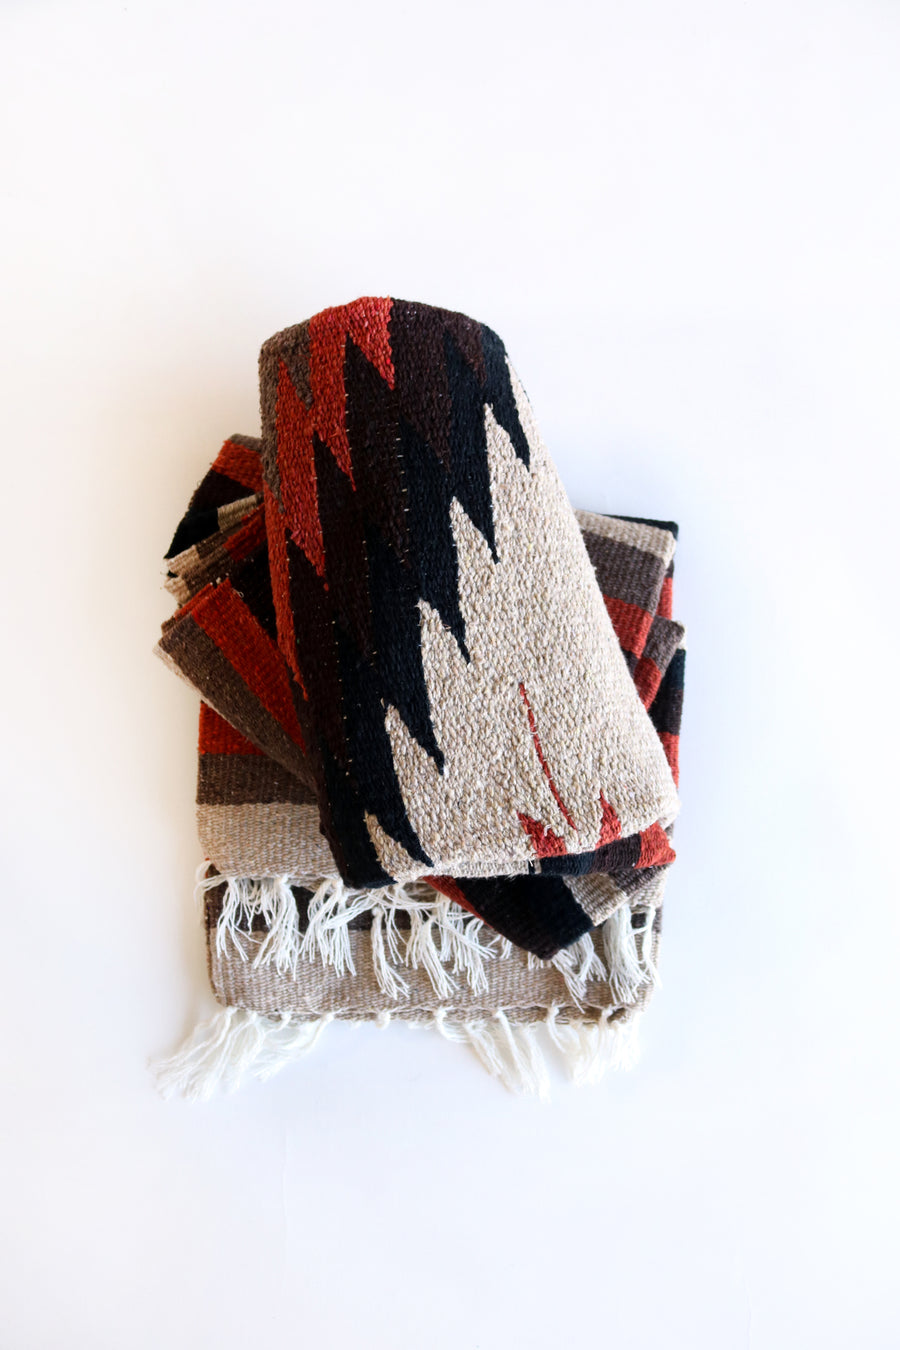 Earth Tones (Terracotta) // Handwoven Blanket